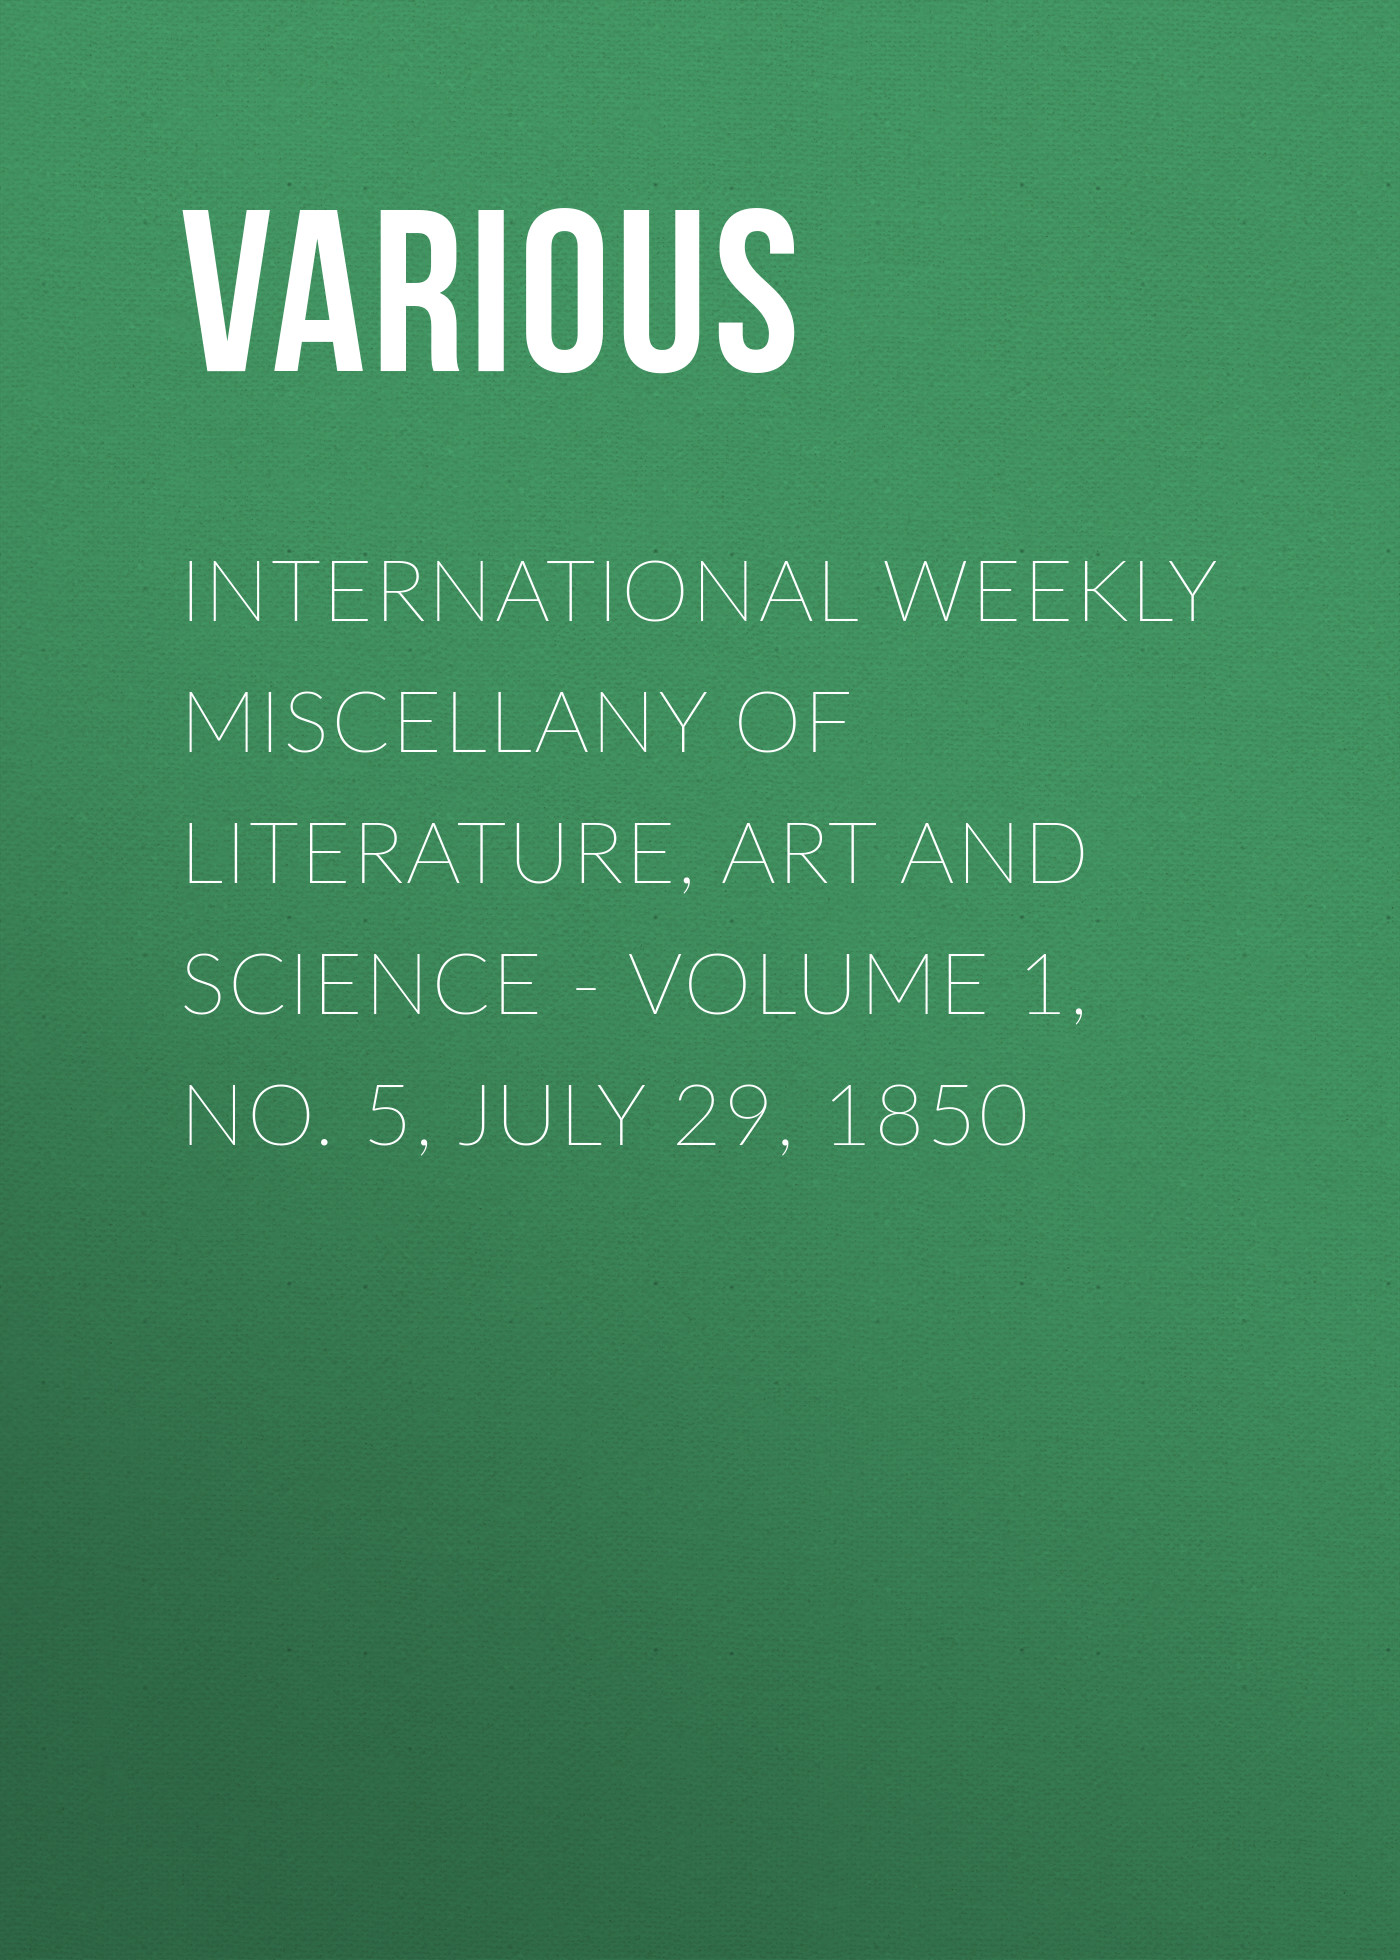 Various International Weekly Miscellany of Literature, Art and Science - Volume 1, No. 5, July 29, 1850 журнал international science project